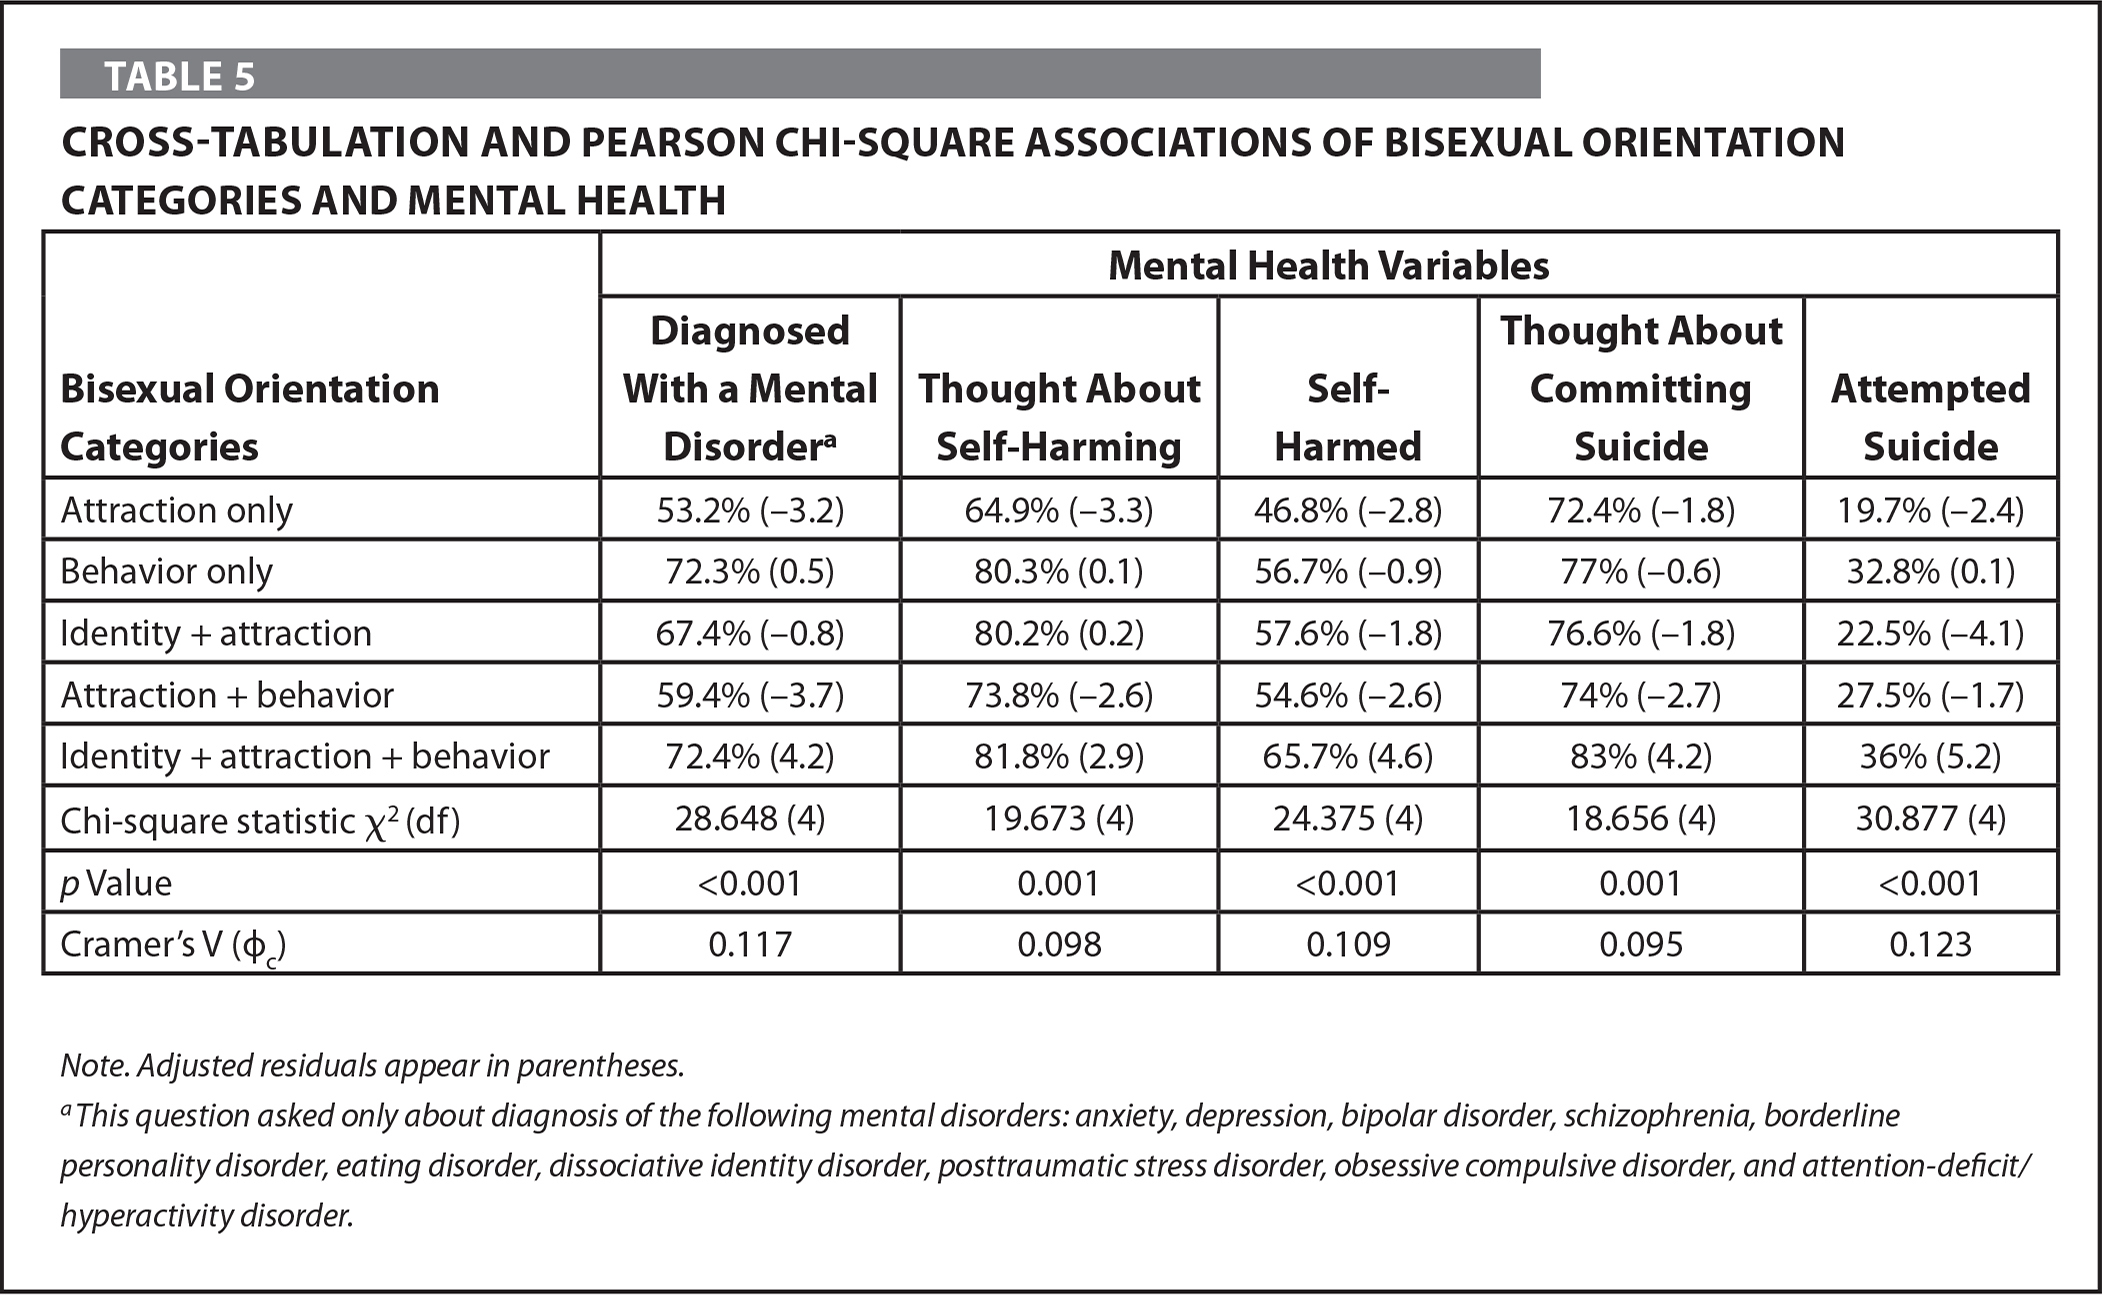 Cross-Tabulation and Pearson Chi-Square Associations of Bisexual Orientation Categories and Mental Health